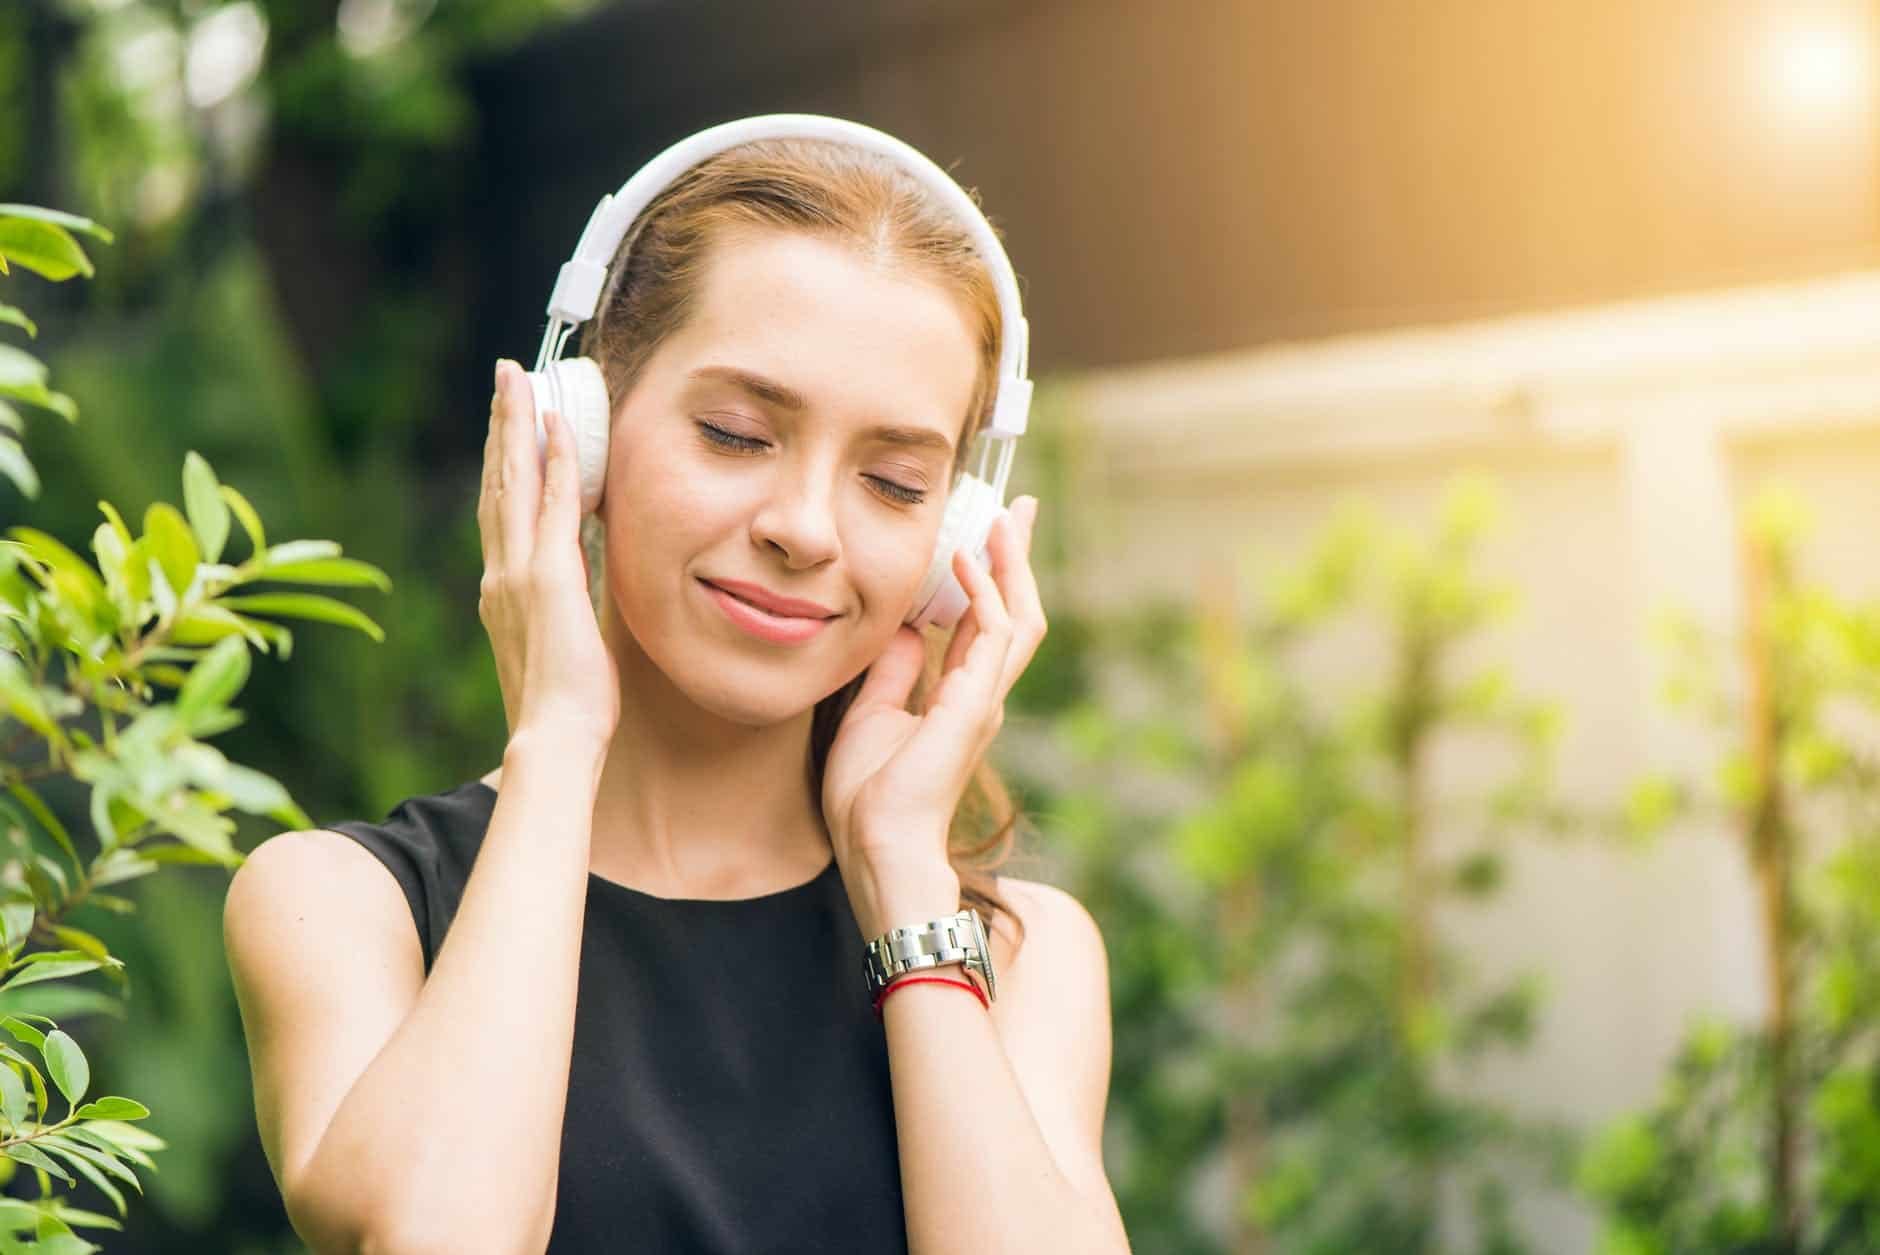 woman wearing black sleeveless dress holding white headphone at daytime Listening to find truth in the silence